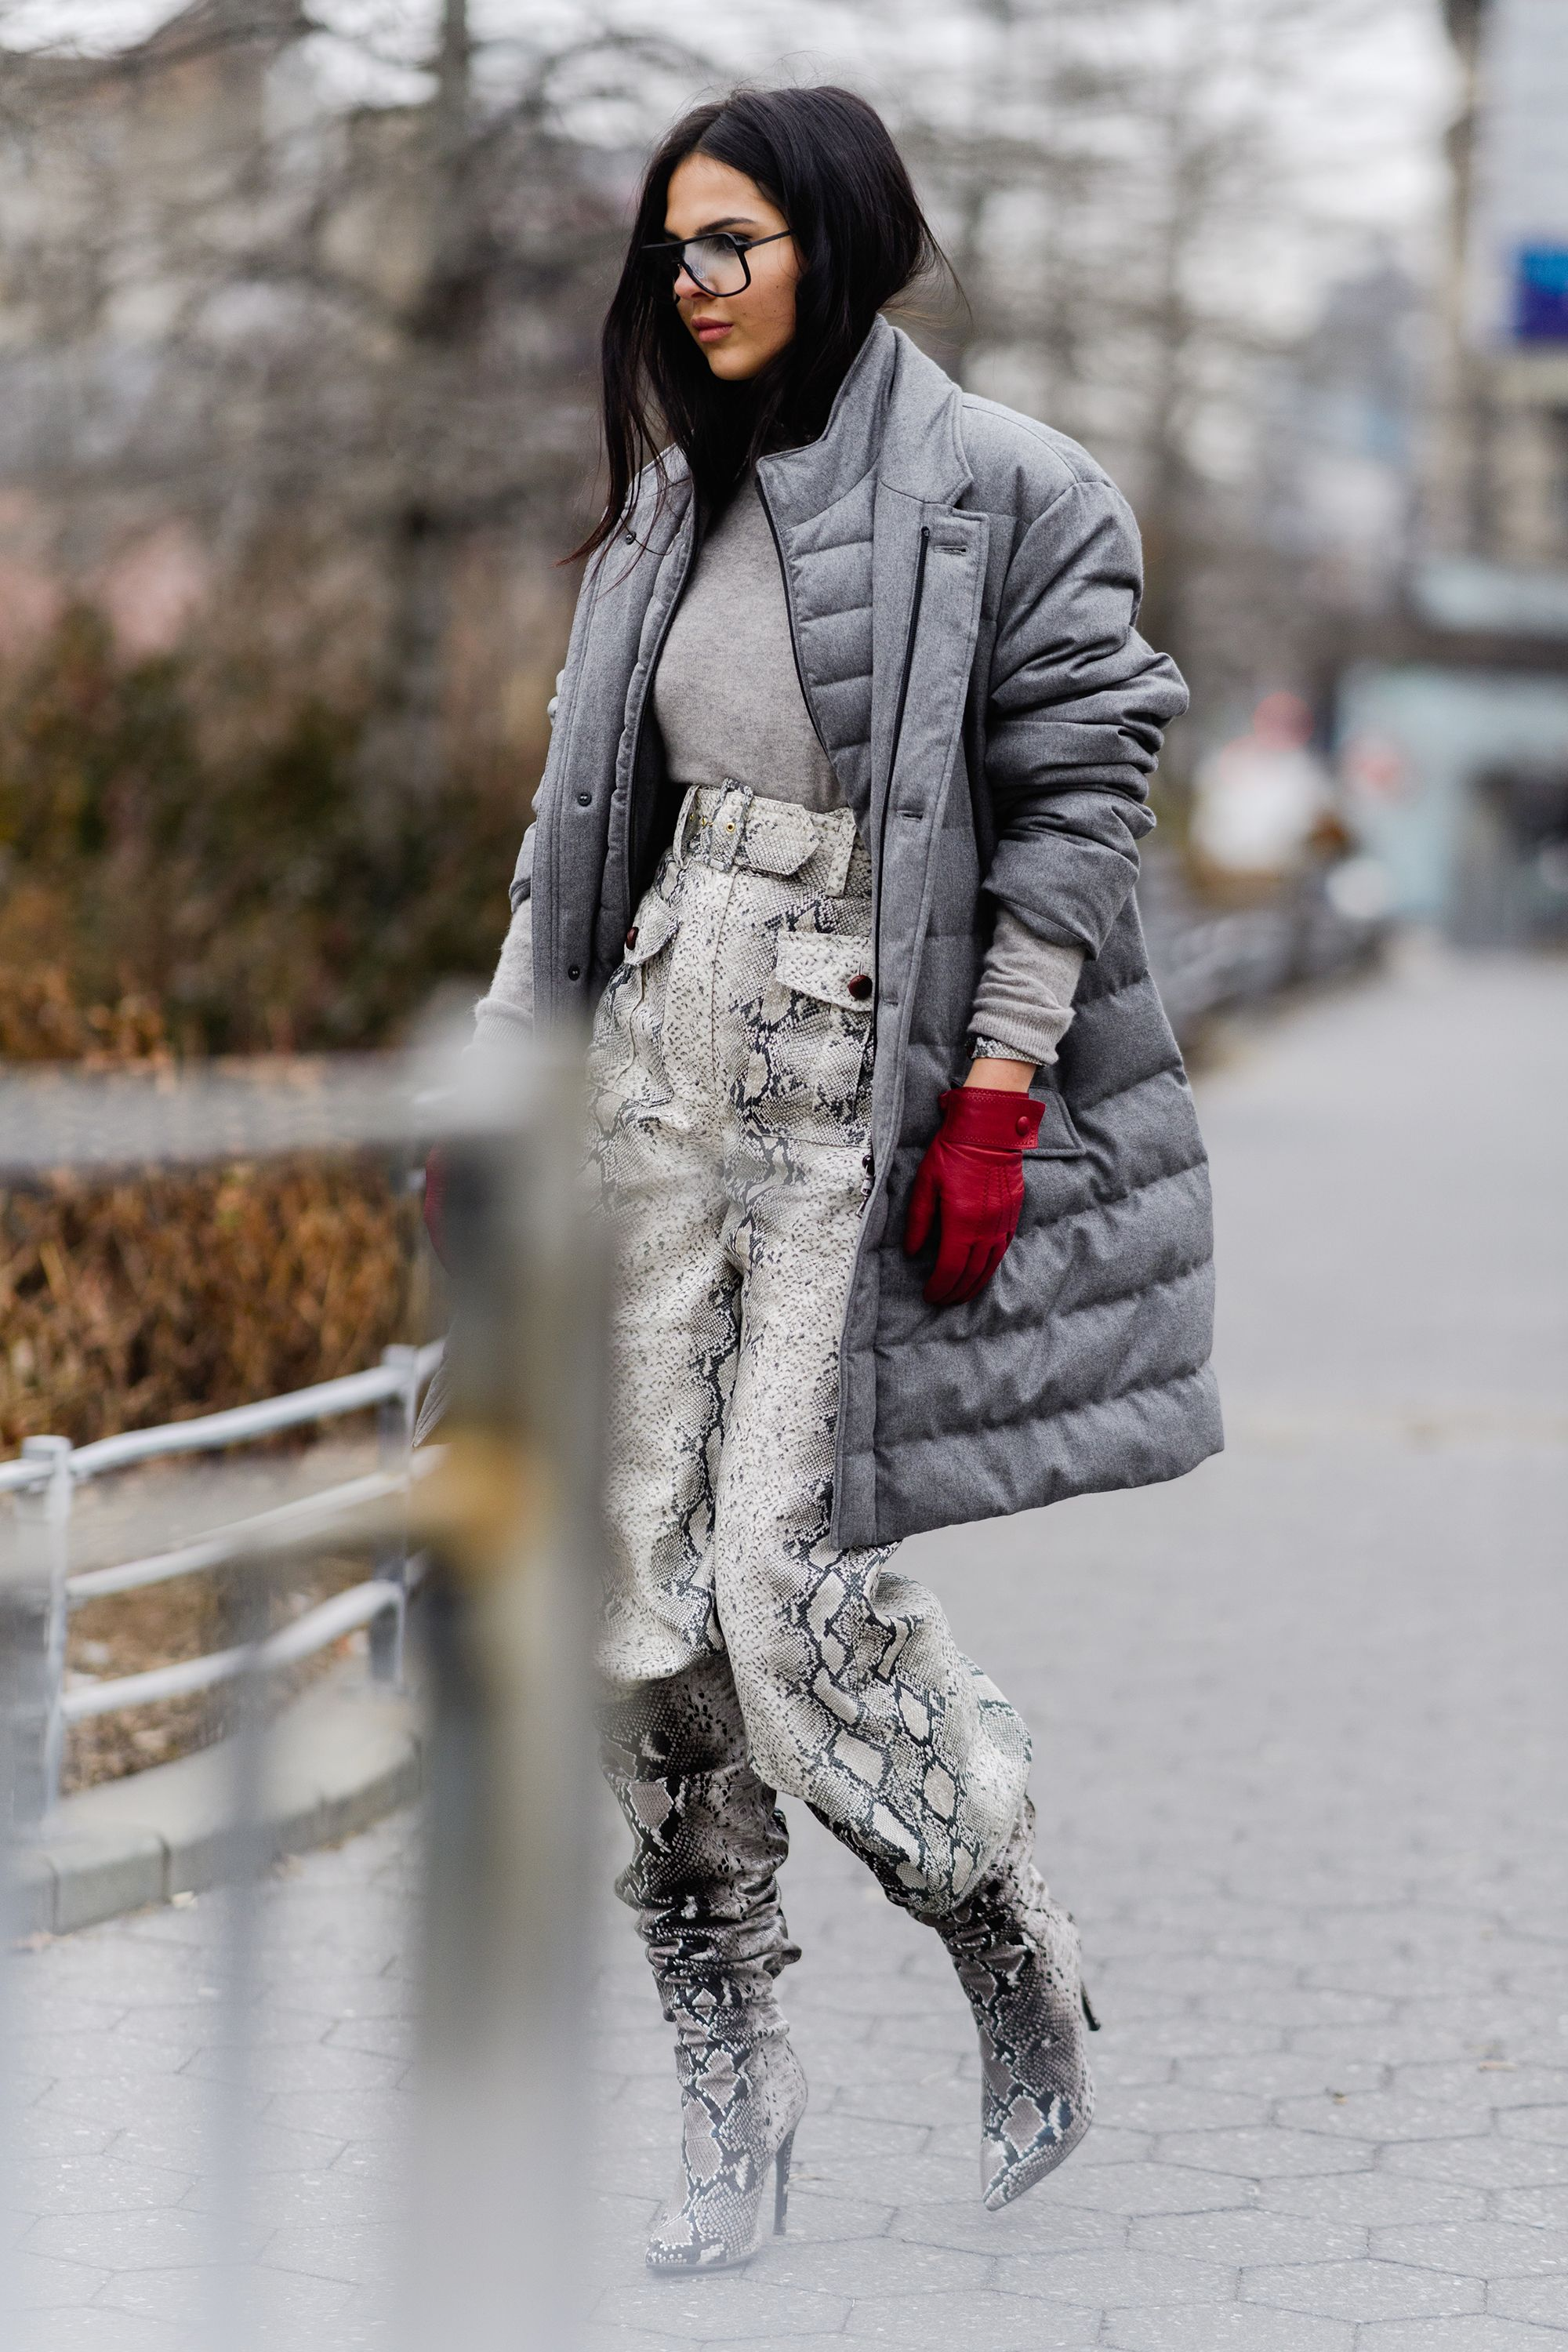 85 Best Street style images in 2018 | Street style, Camila